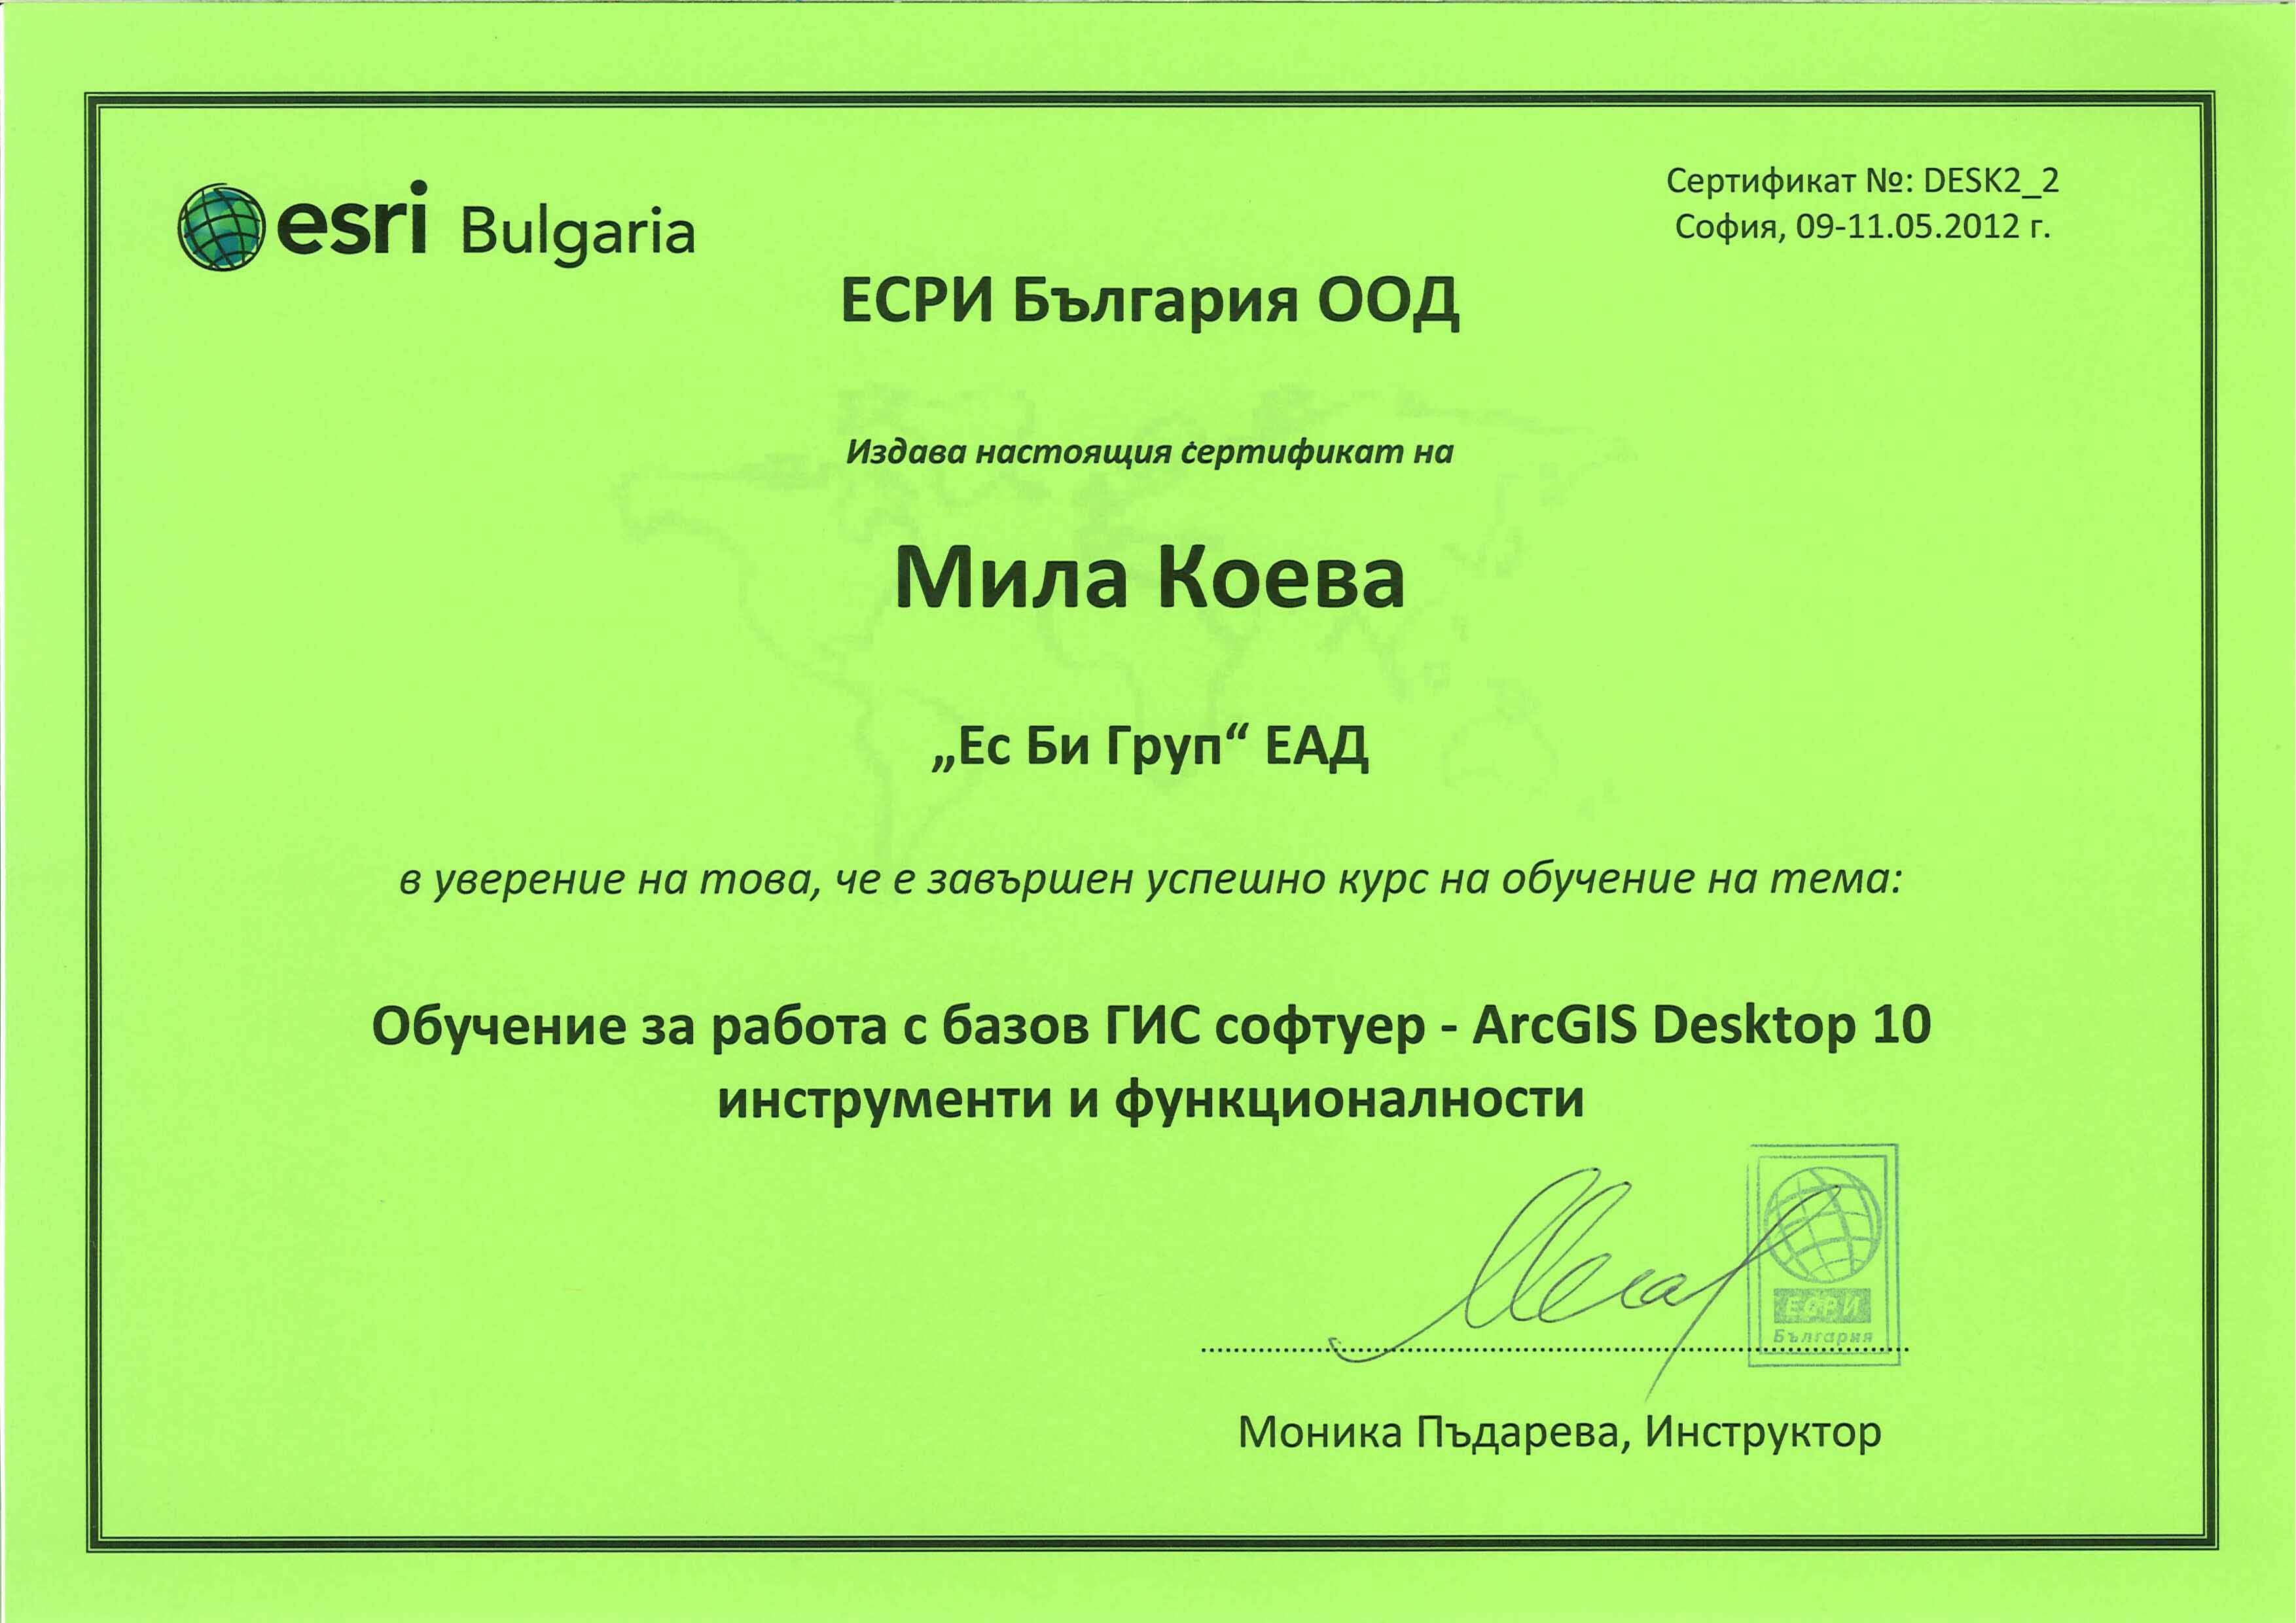 Education mila koeva personal web page certificate of attendance in course for working with arcgis software xflitez Gallery